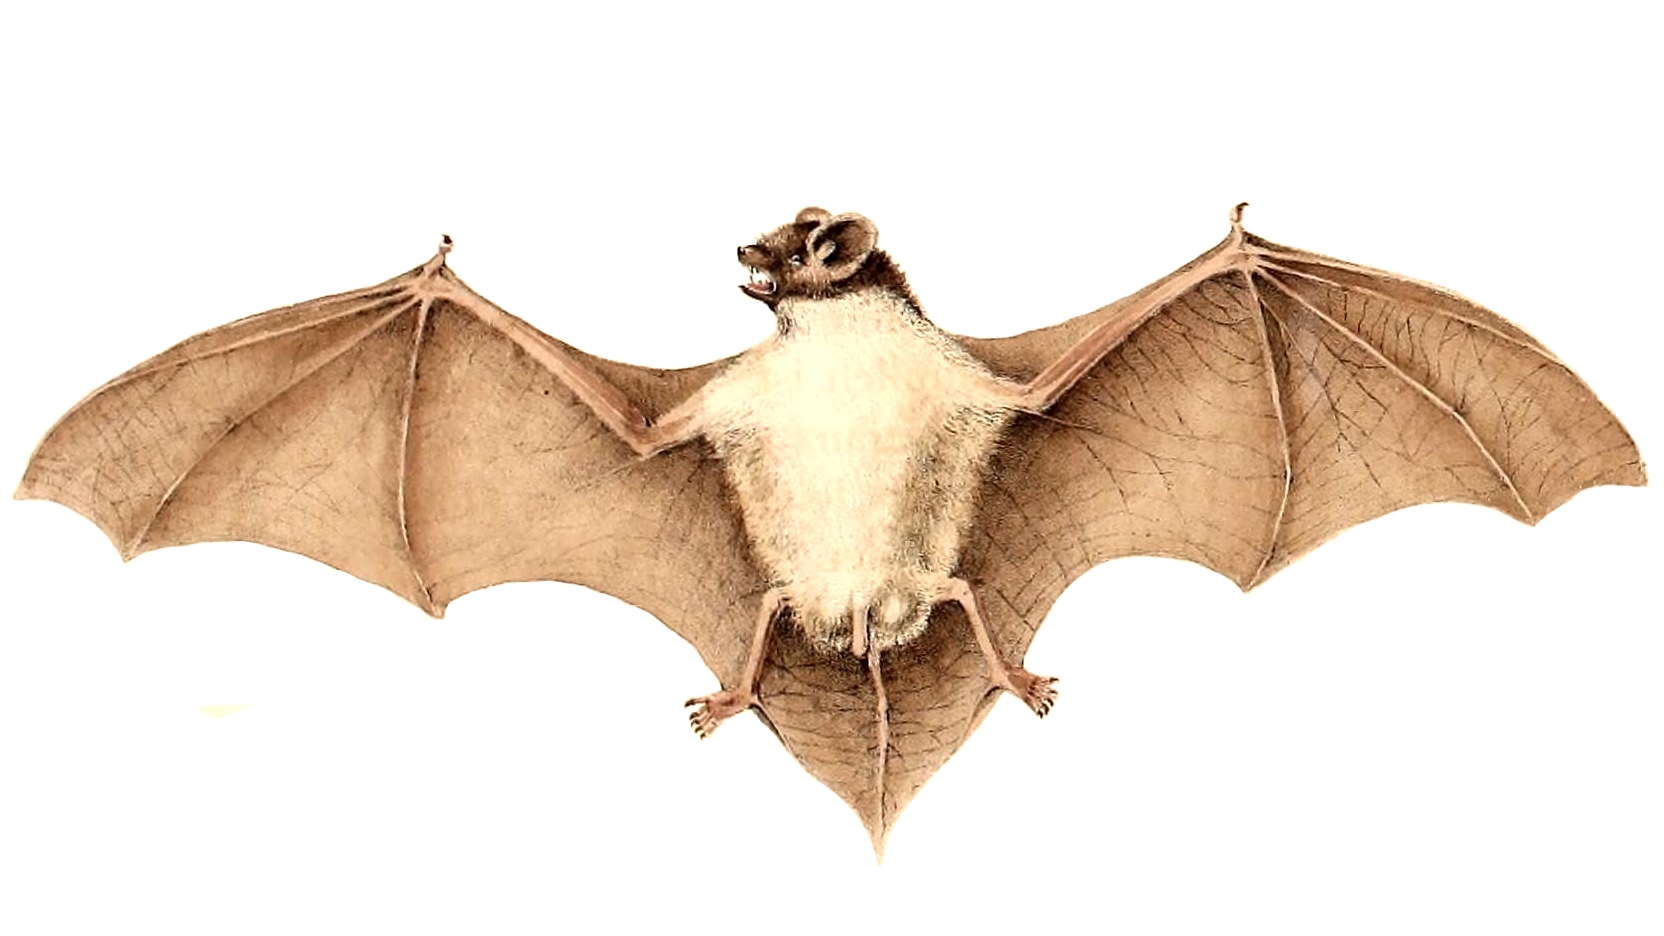 The average litter size of a Rüppell's pipistrelle is 1